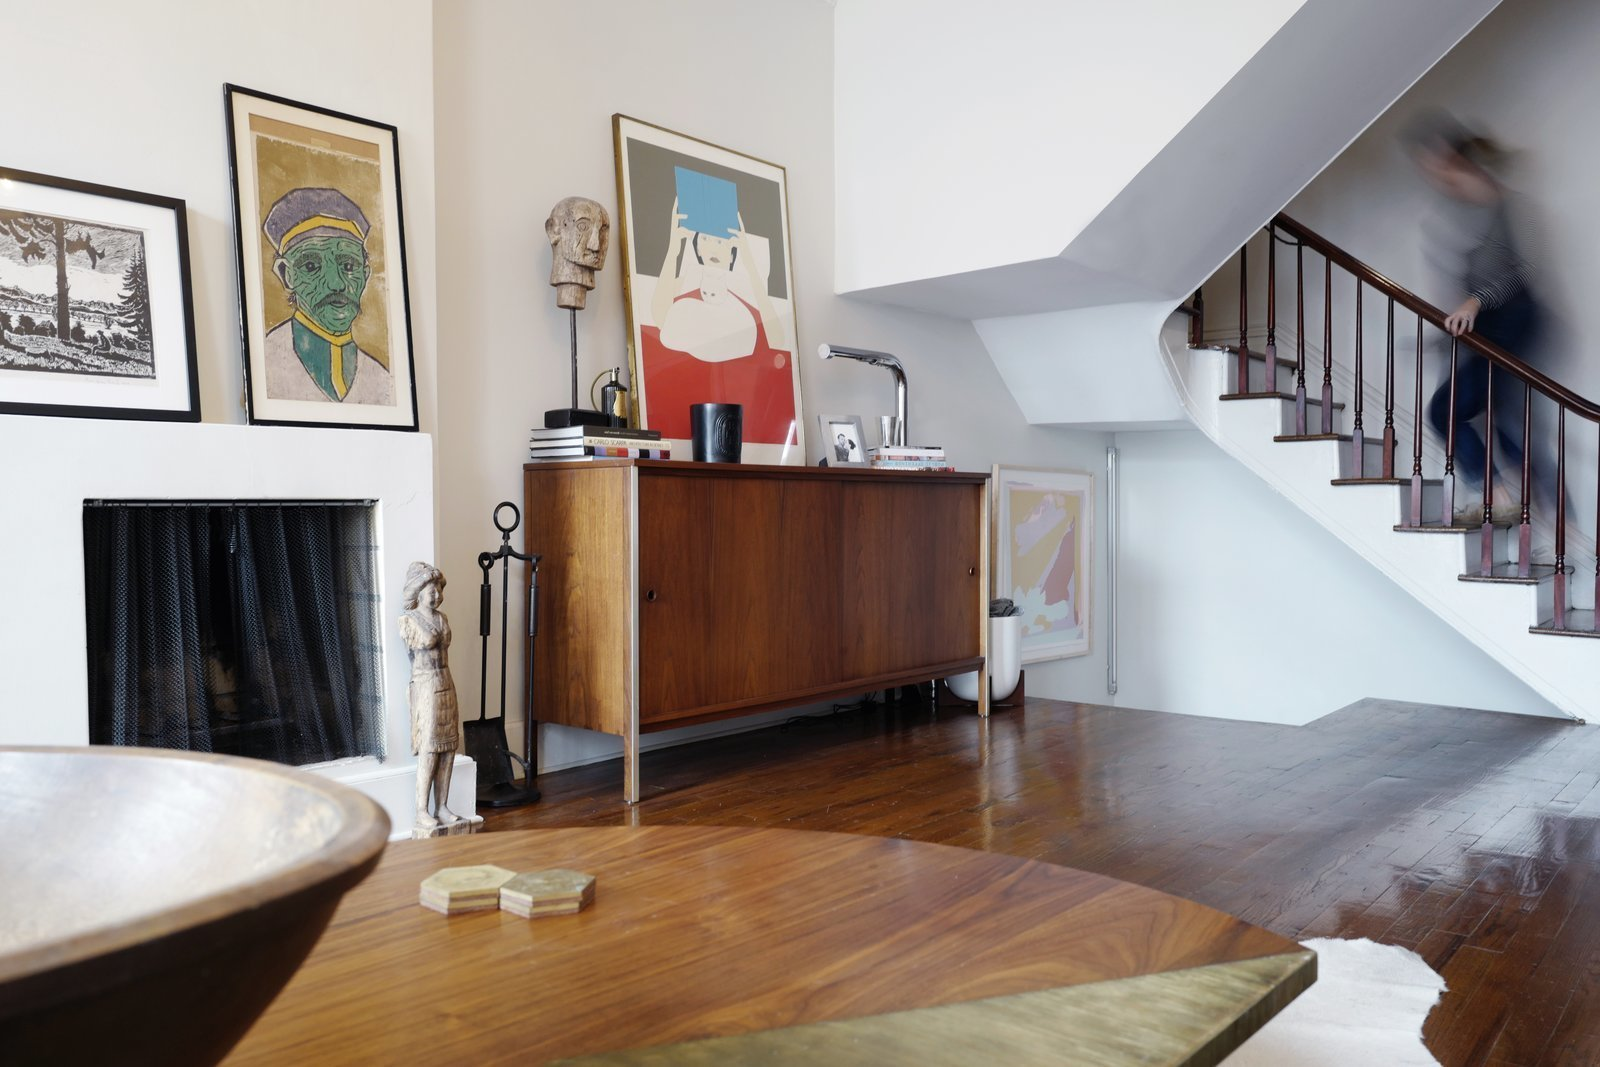 Living Room, Standard Layout Fireplace, Wood Burning Fireplace, Table Lighting, Coffee Tables, Media Cabinet, Dark Hardwood Floor, and Storage  Photo 1 of 16 in A Design Duo's 19th-Century Brooklyn Townhouse Is Filled With Art They Love